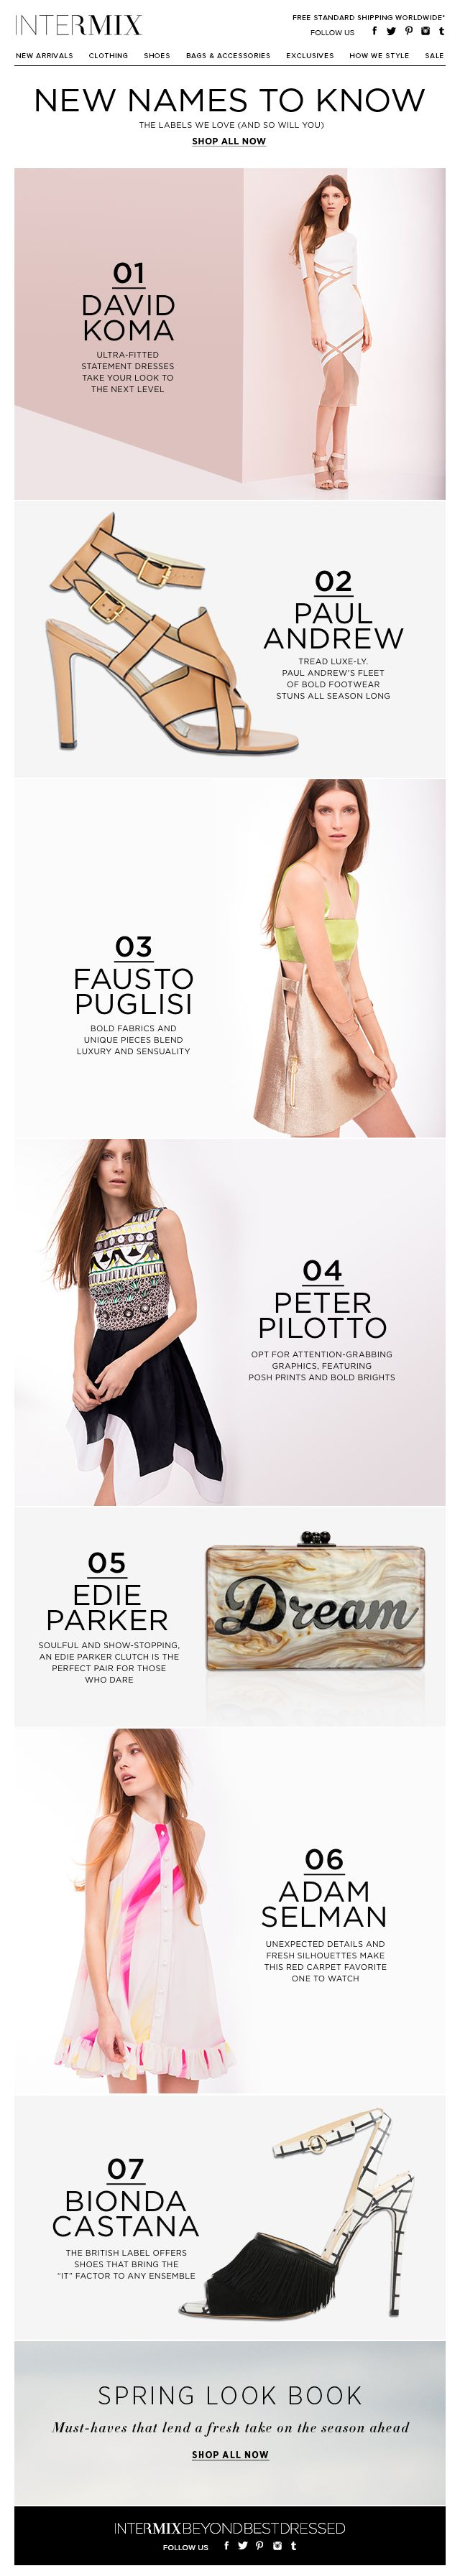 InterMix New Names to Know